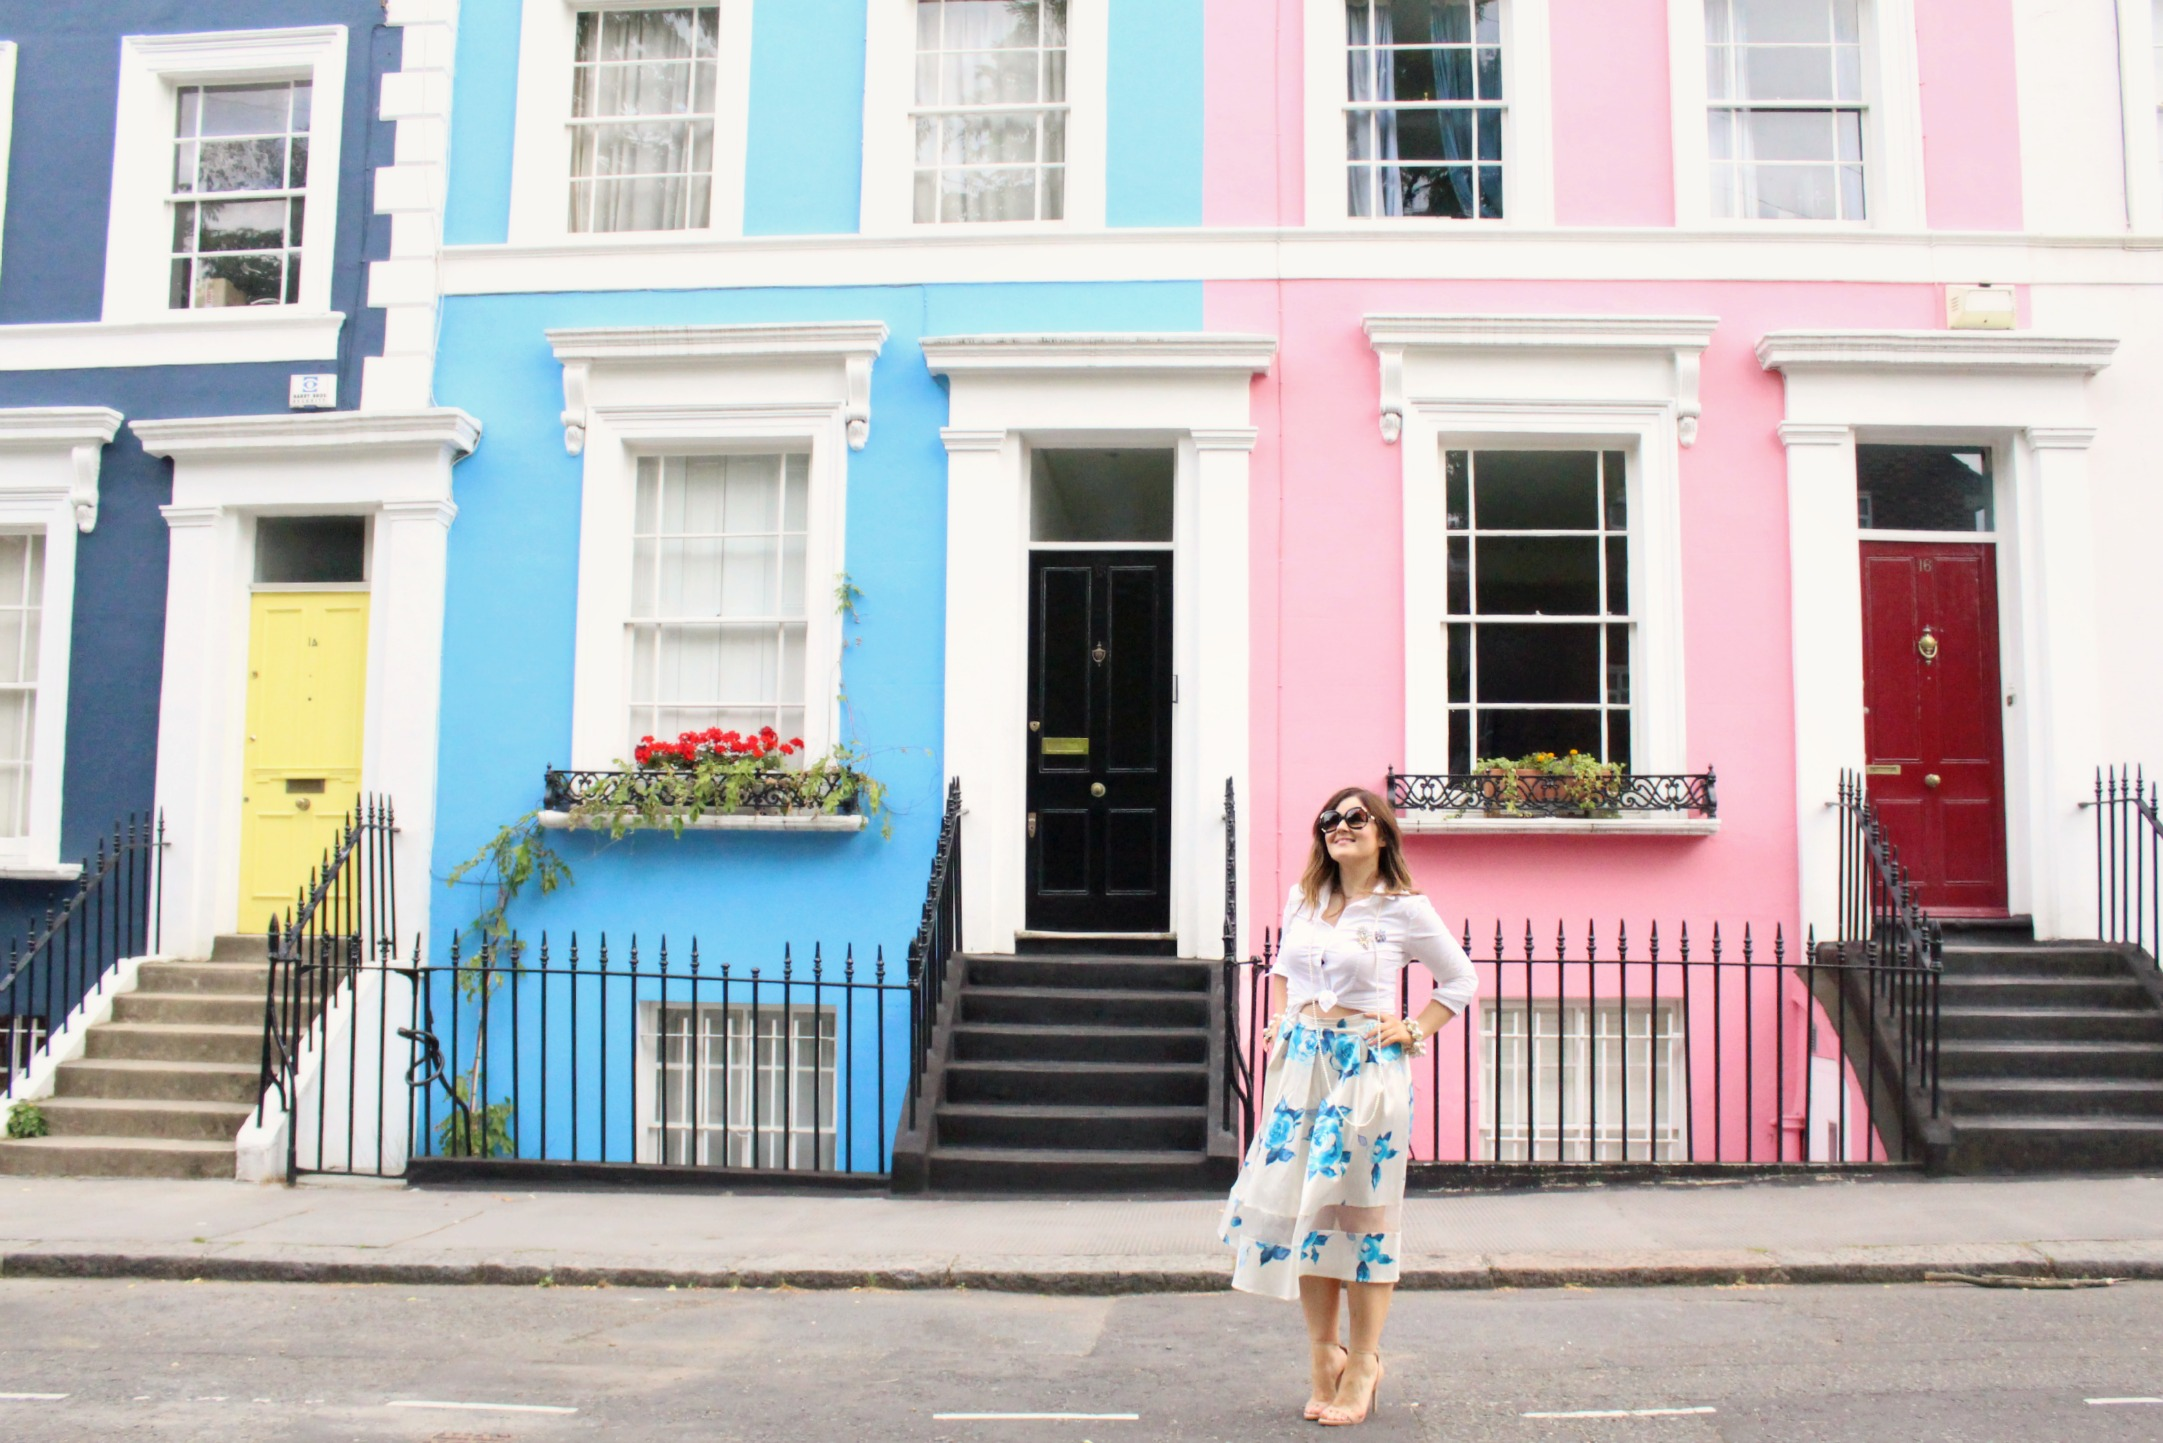 On the Pastel Streets of Notting Hill